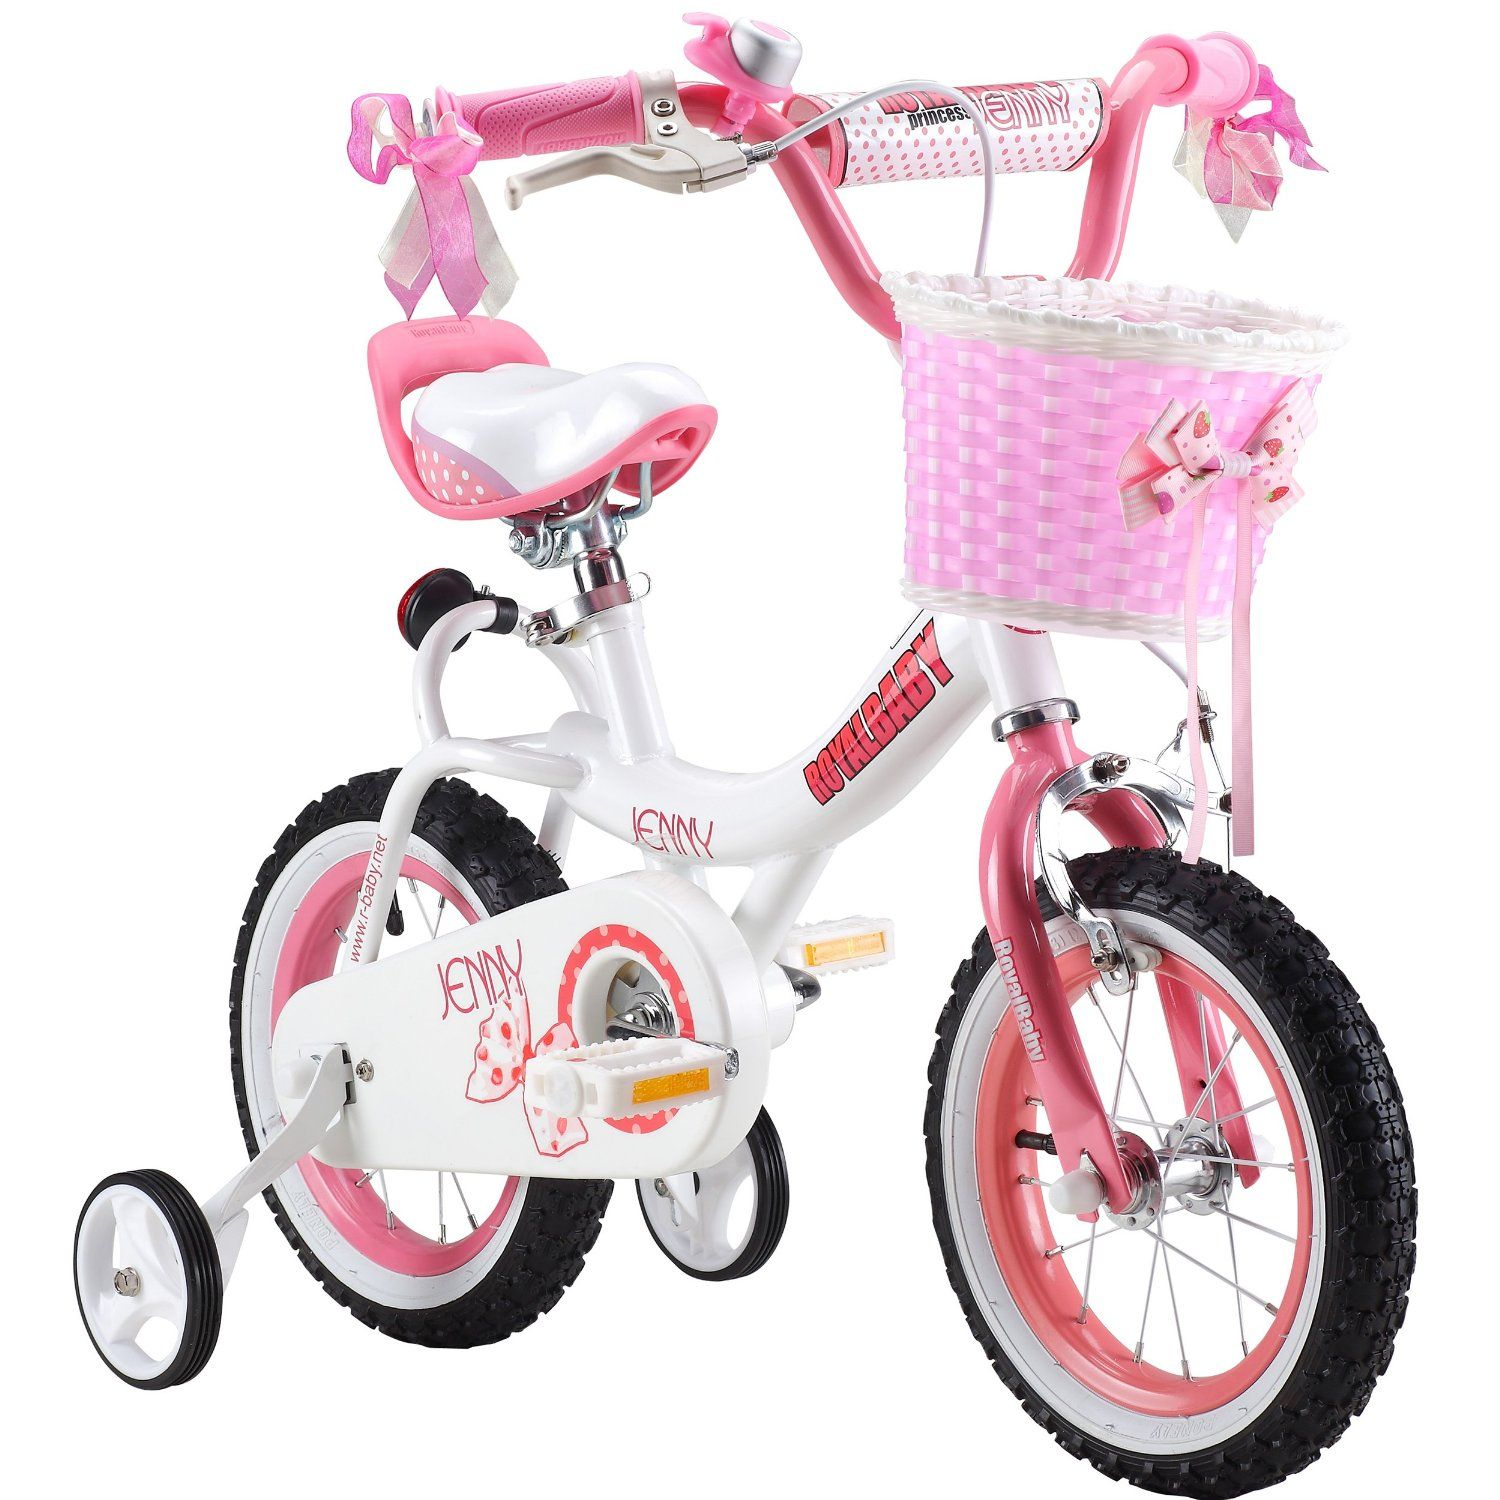 Top 7 Best Bikes For Kids In 2016 Reviews Bike With Training